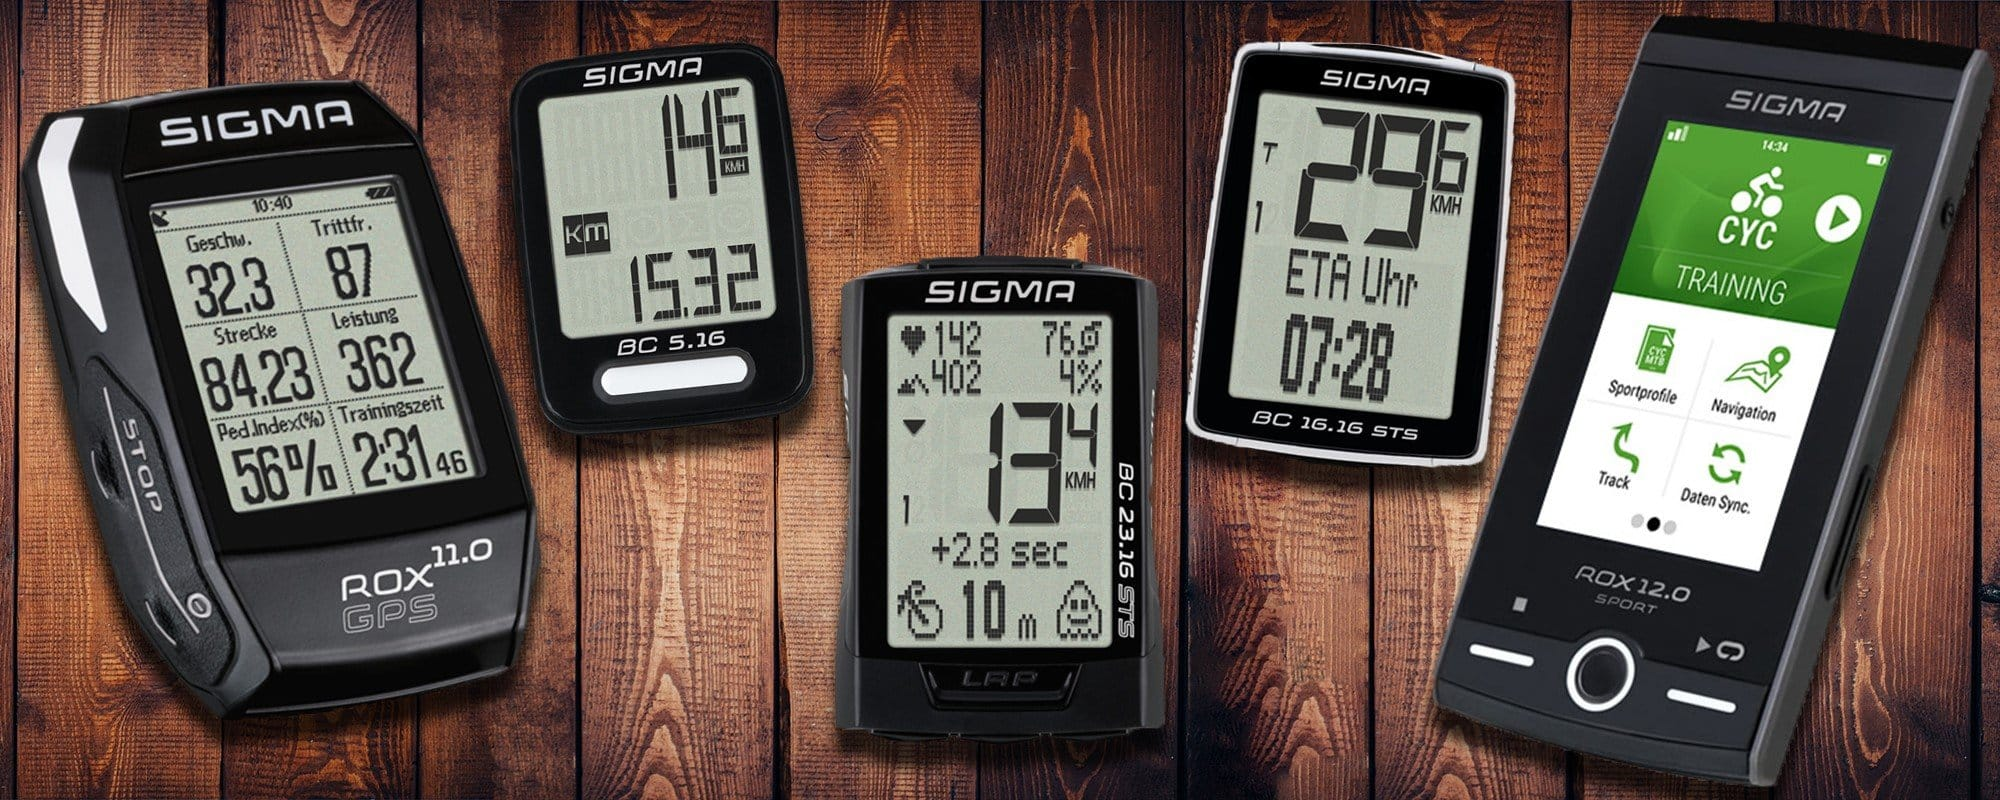 Sigma bike computer test & complete model overview 2021 - everything you need to know